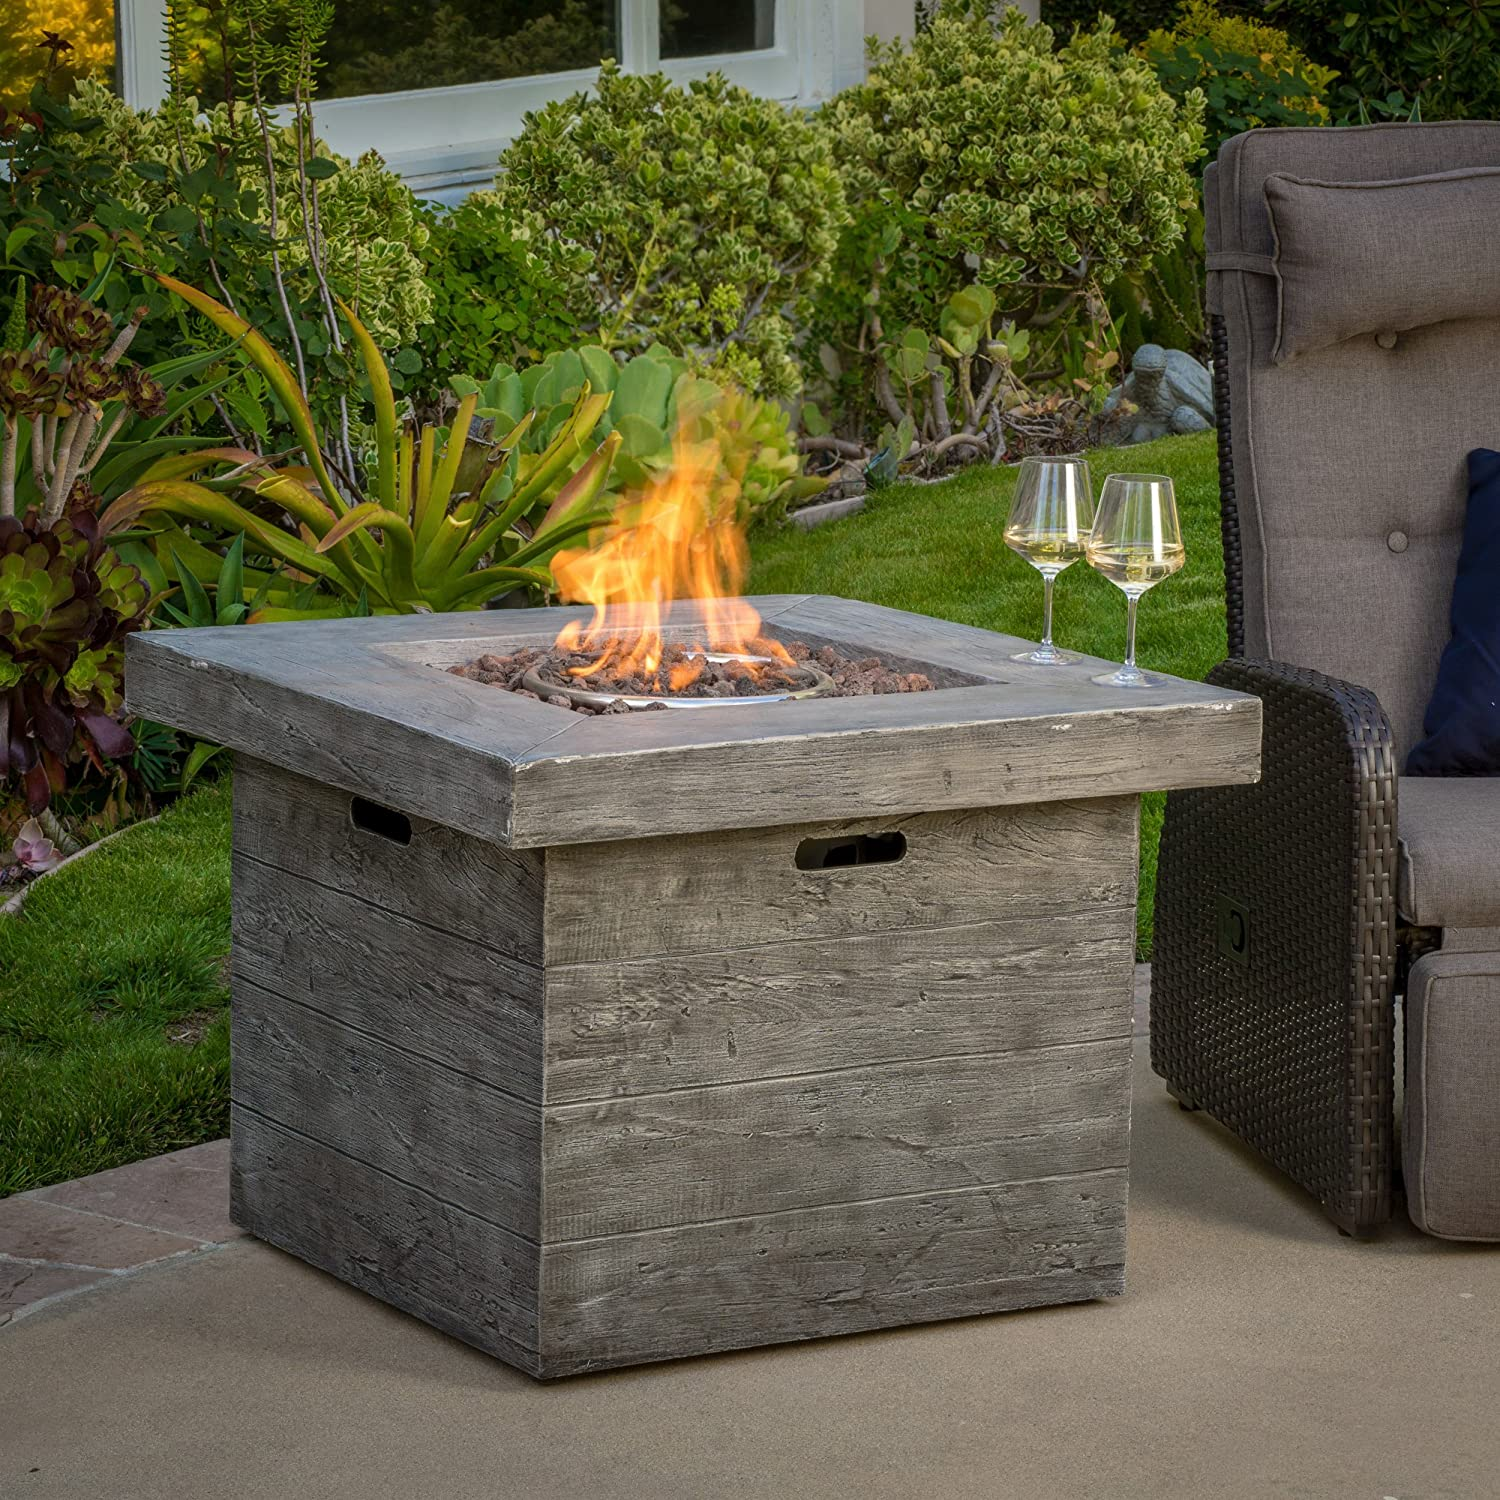 Pros & Cons of the Vermont Outdoor Fire Pit Table